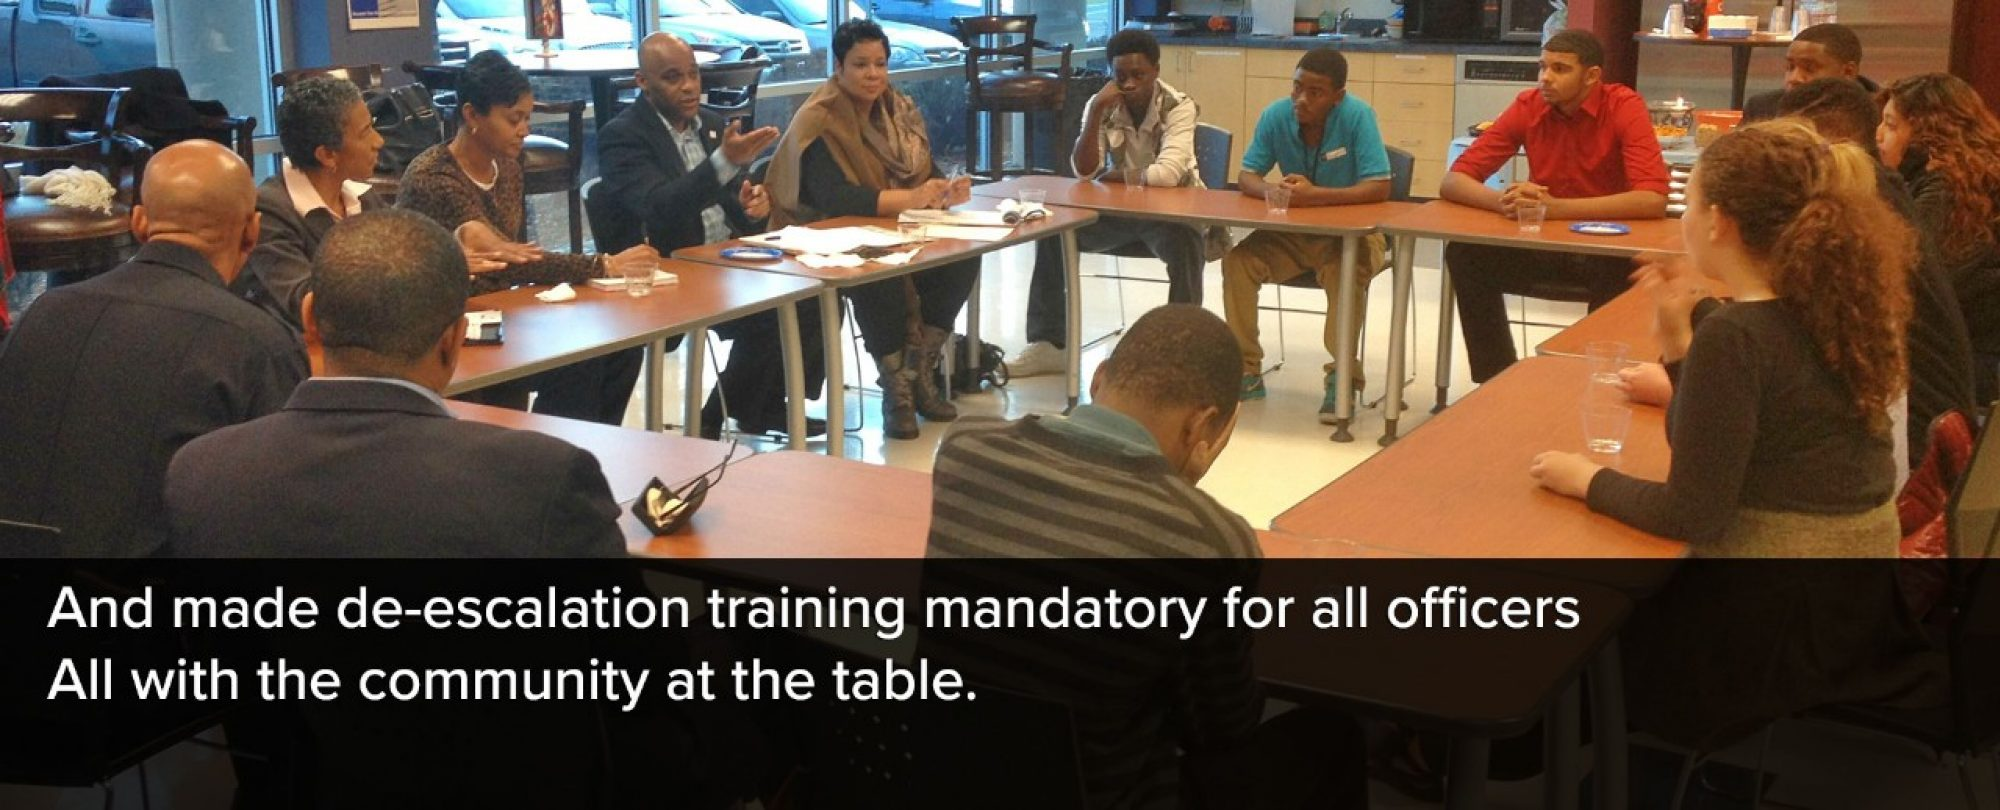 Photo of Mayor Michael B. Hancock at a community table discussion around mandatory de-escalation training. De-escalation training was made mandatory for all officers